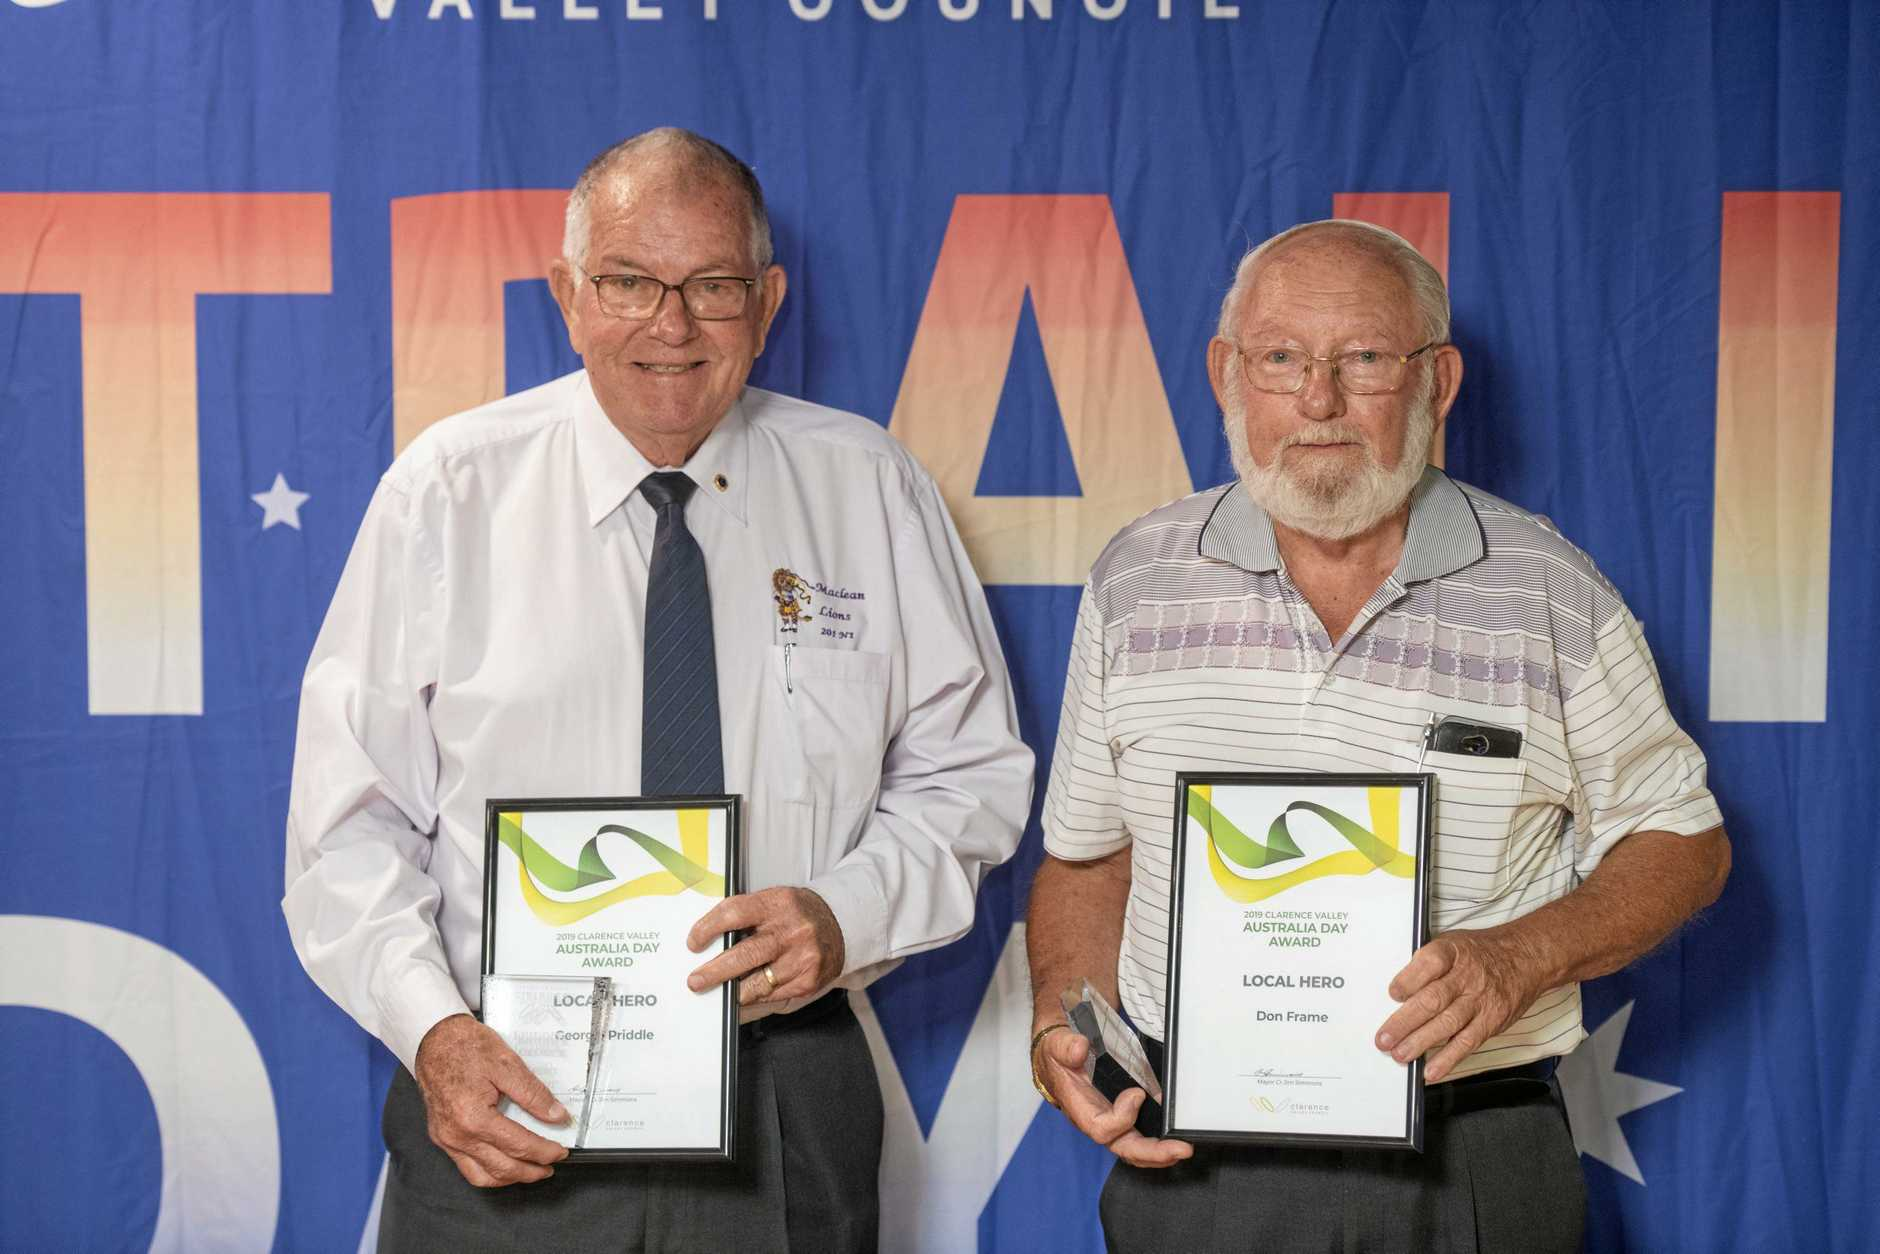 George Priddle and Don Frame were joint winners of the Clarence Valley Australia Day Local Hero award.